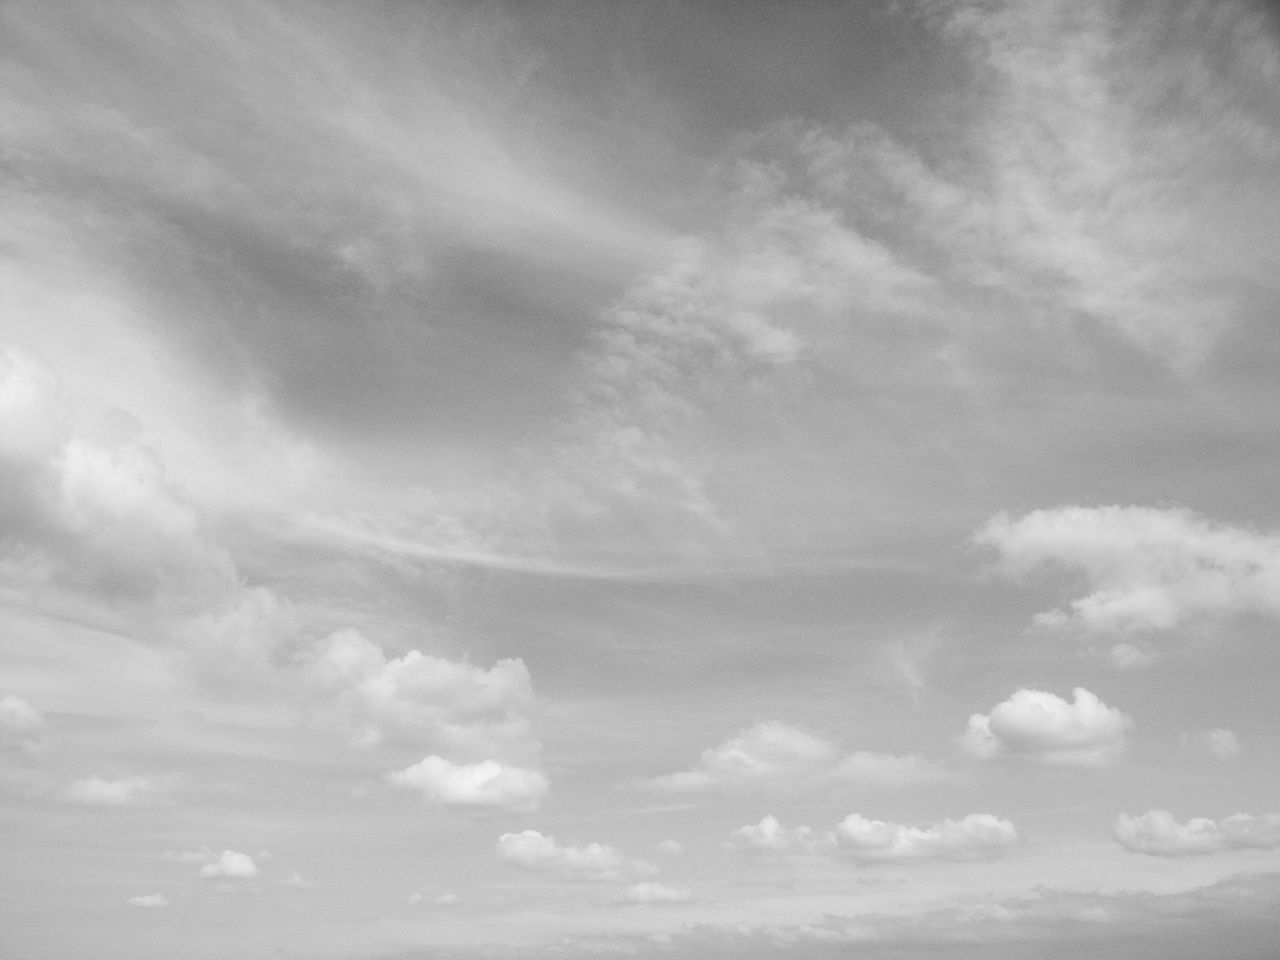 cloud - sky, sky, beauty in nature, nature, sky only, low angle view, no people, tranquility, scenics, day, tranquil scene, backgrounds, outdoors